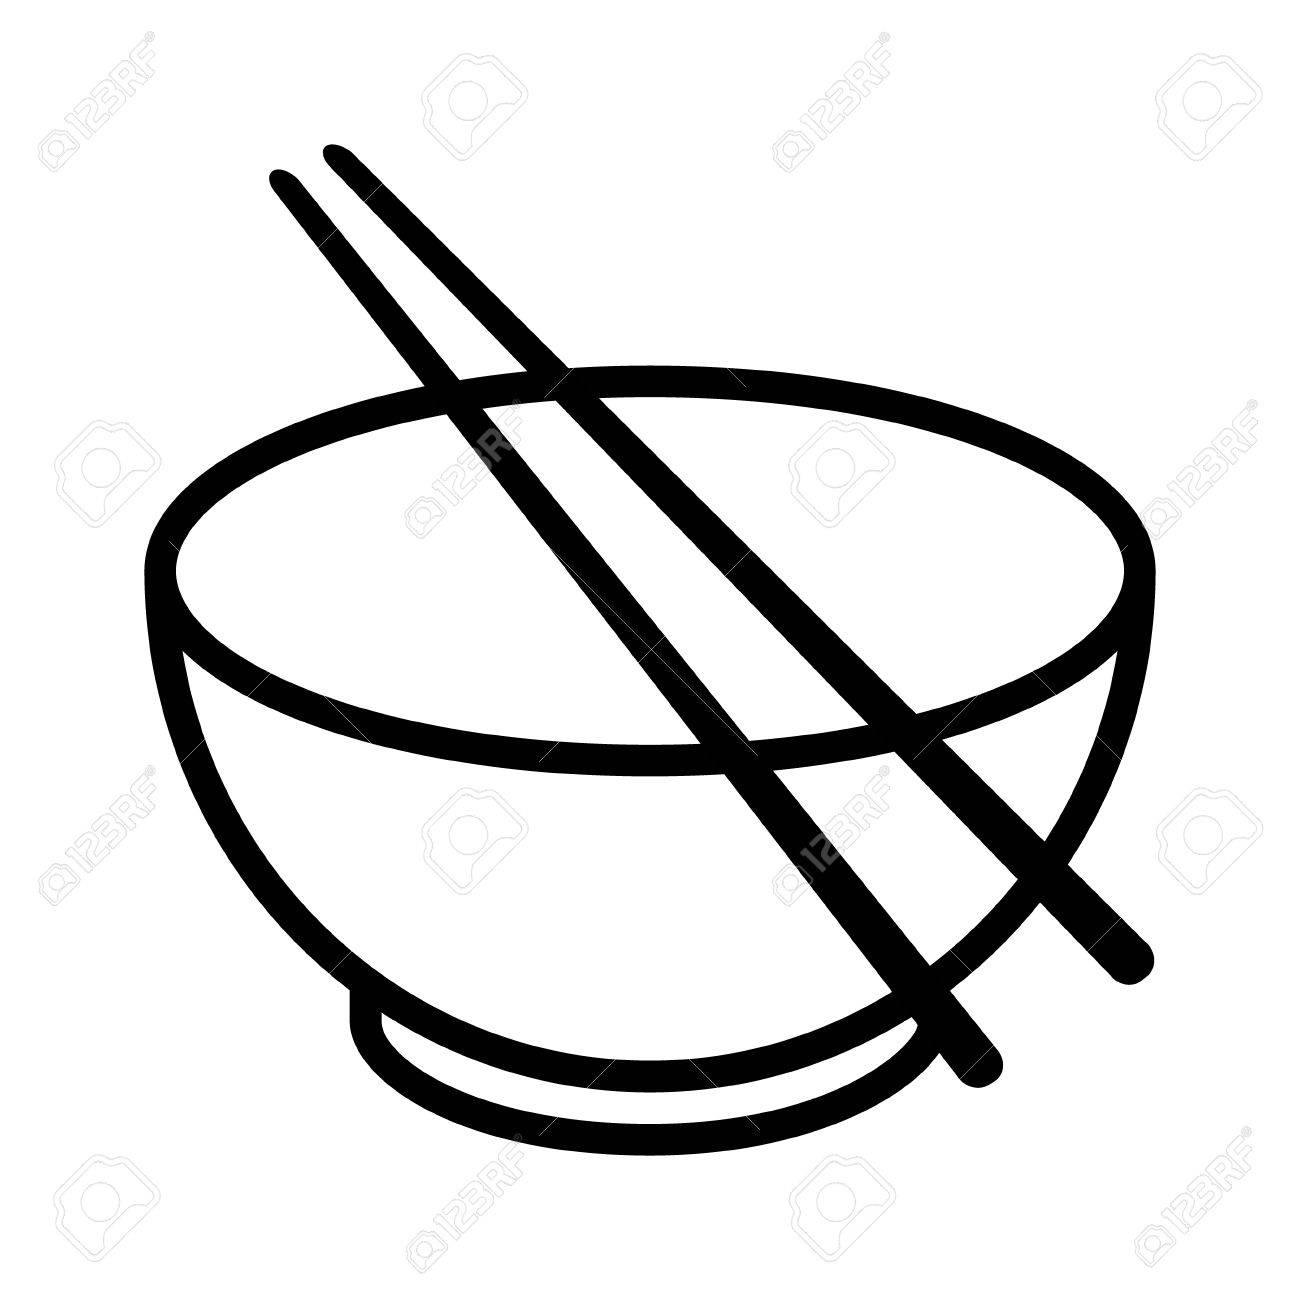 bowl with chopsticks line art vector icon for food apps and websites